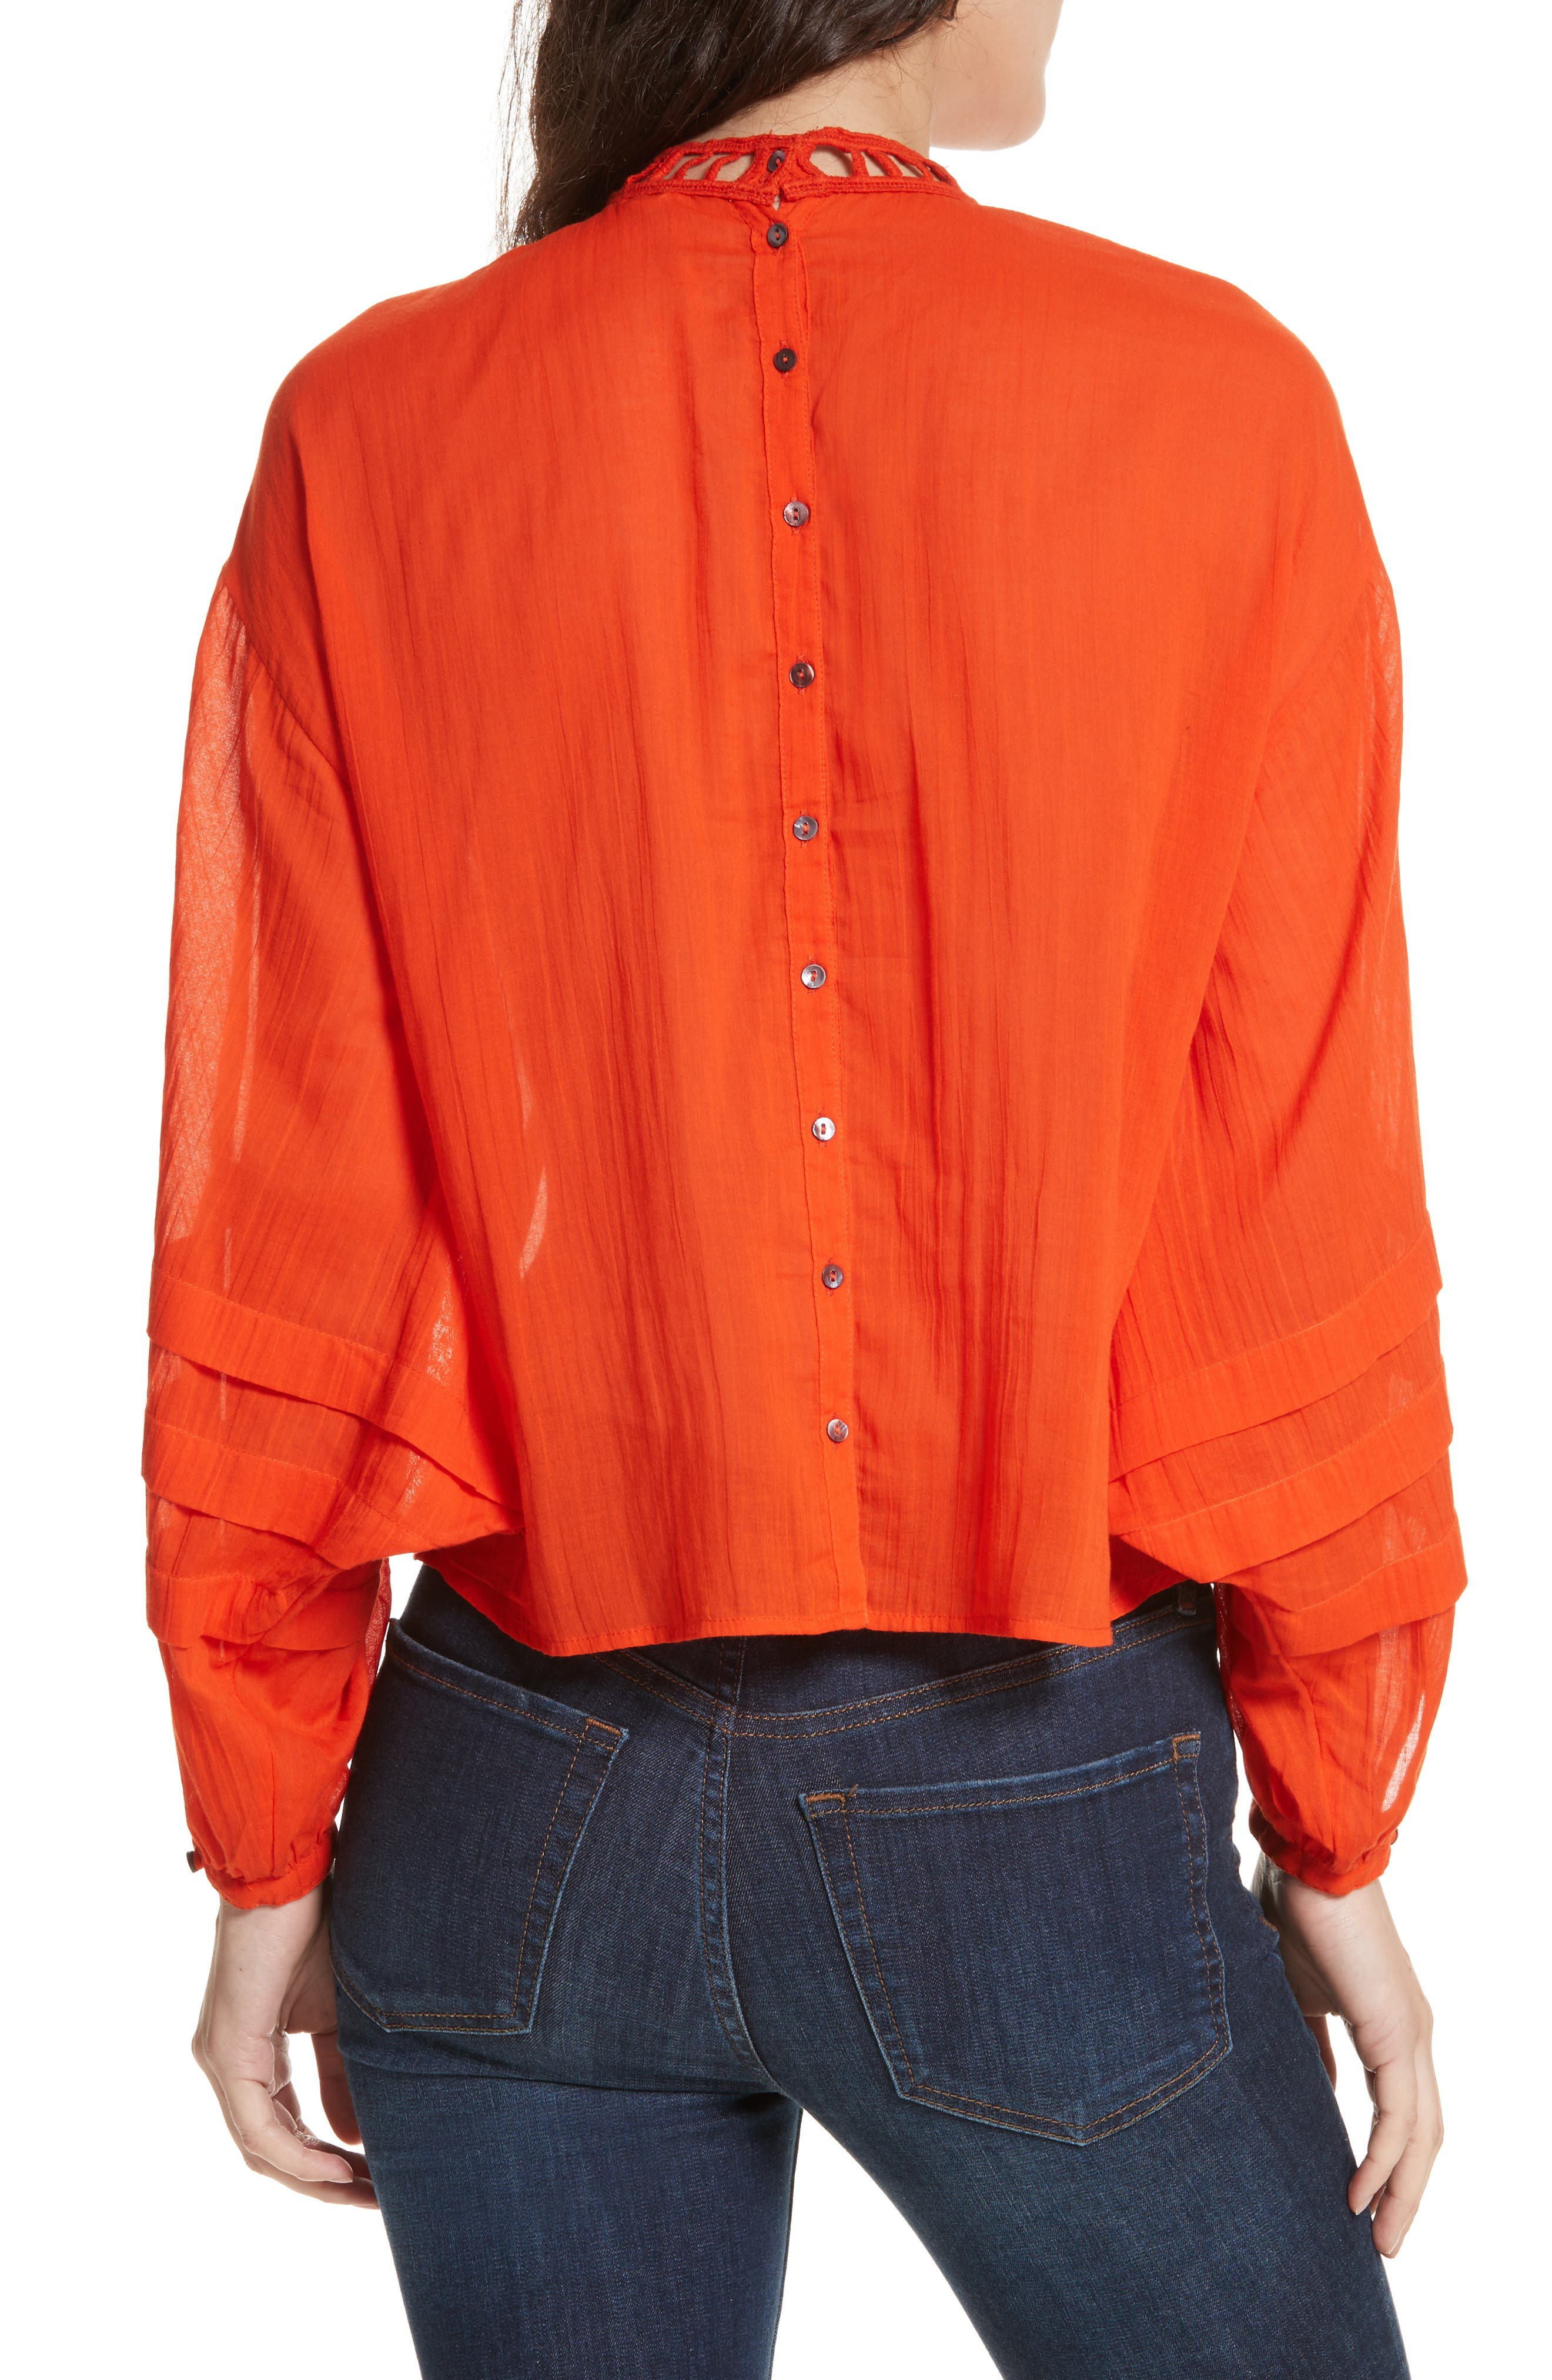 Heart of Gold Embellished Blouse,                             Alternate thumbnail 2, color,                             Red